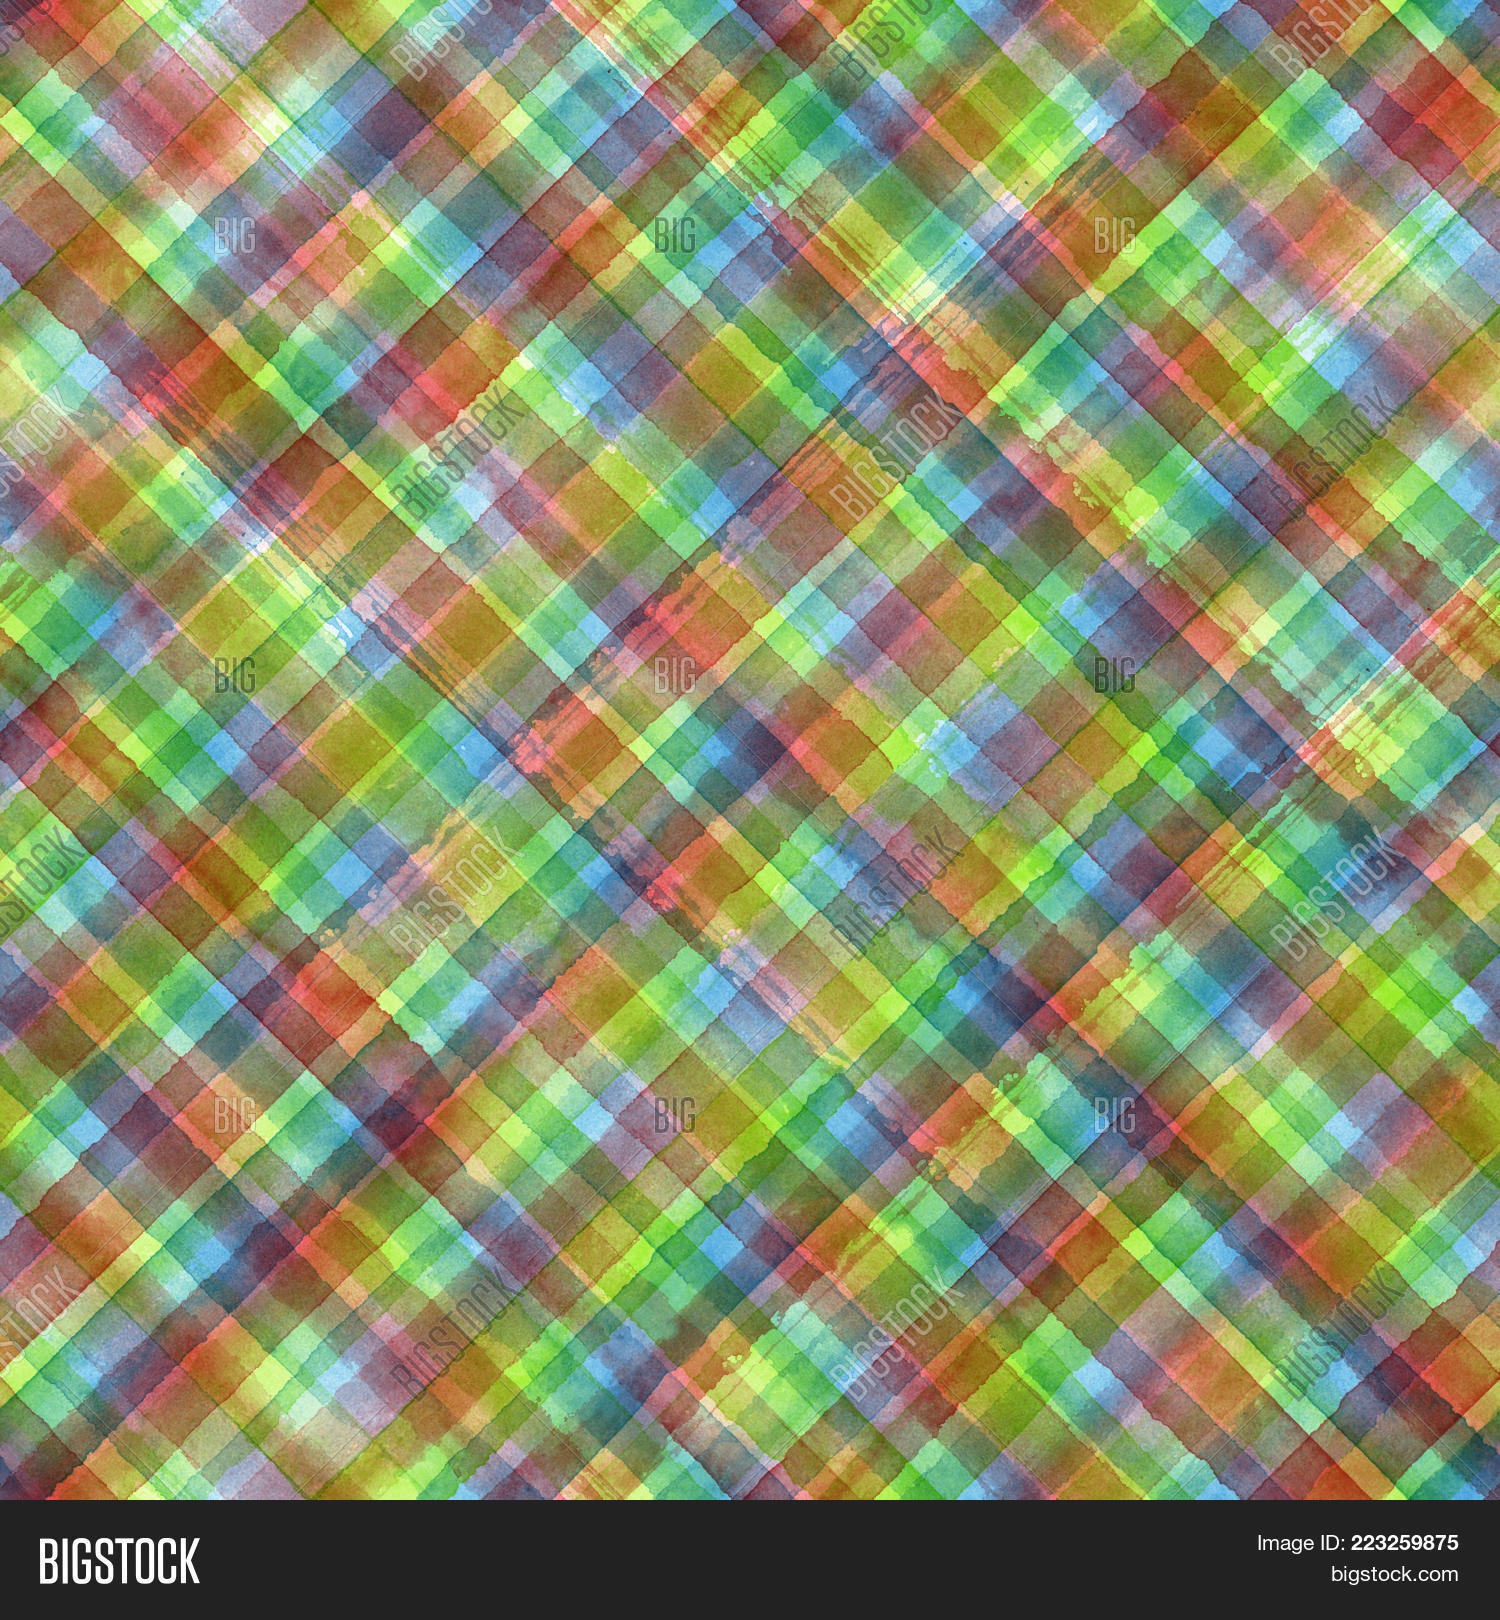 Colorful Grunge Madras Tartan Plaid Diagonal Abstract Geometric Seamless Background Watercolor Hand Drawn Pattern